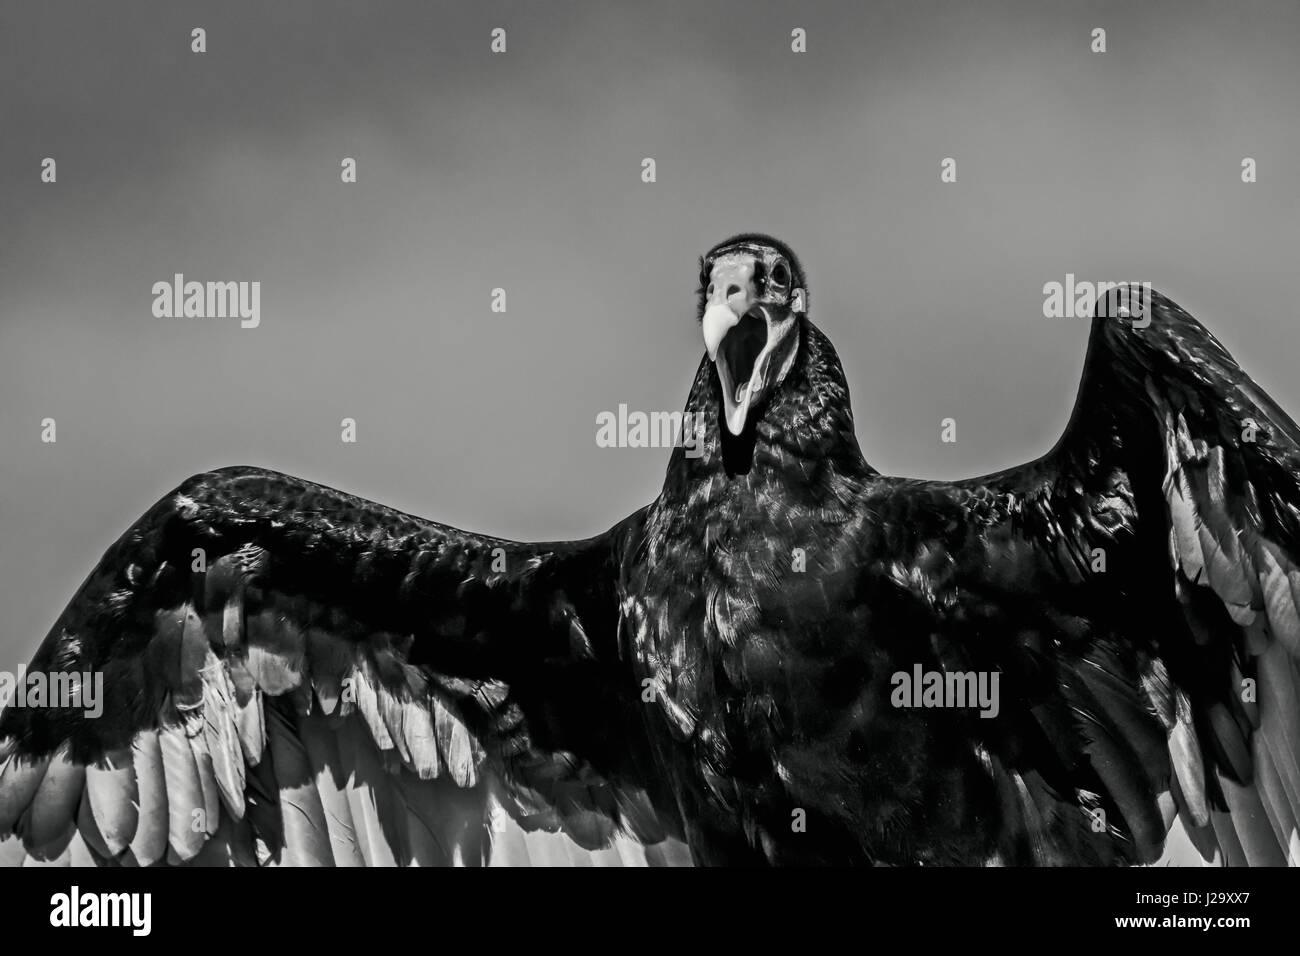 Black vulture wings and beak open in black and white